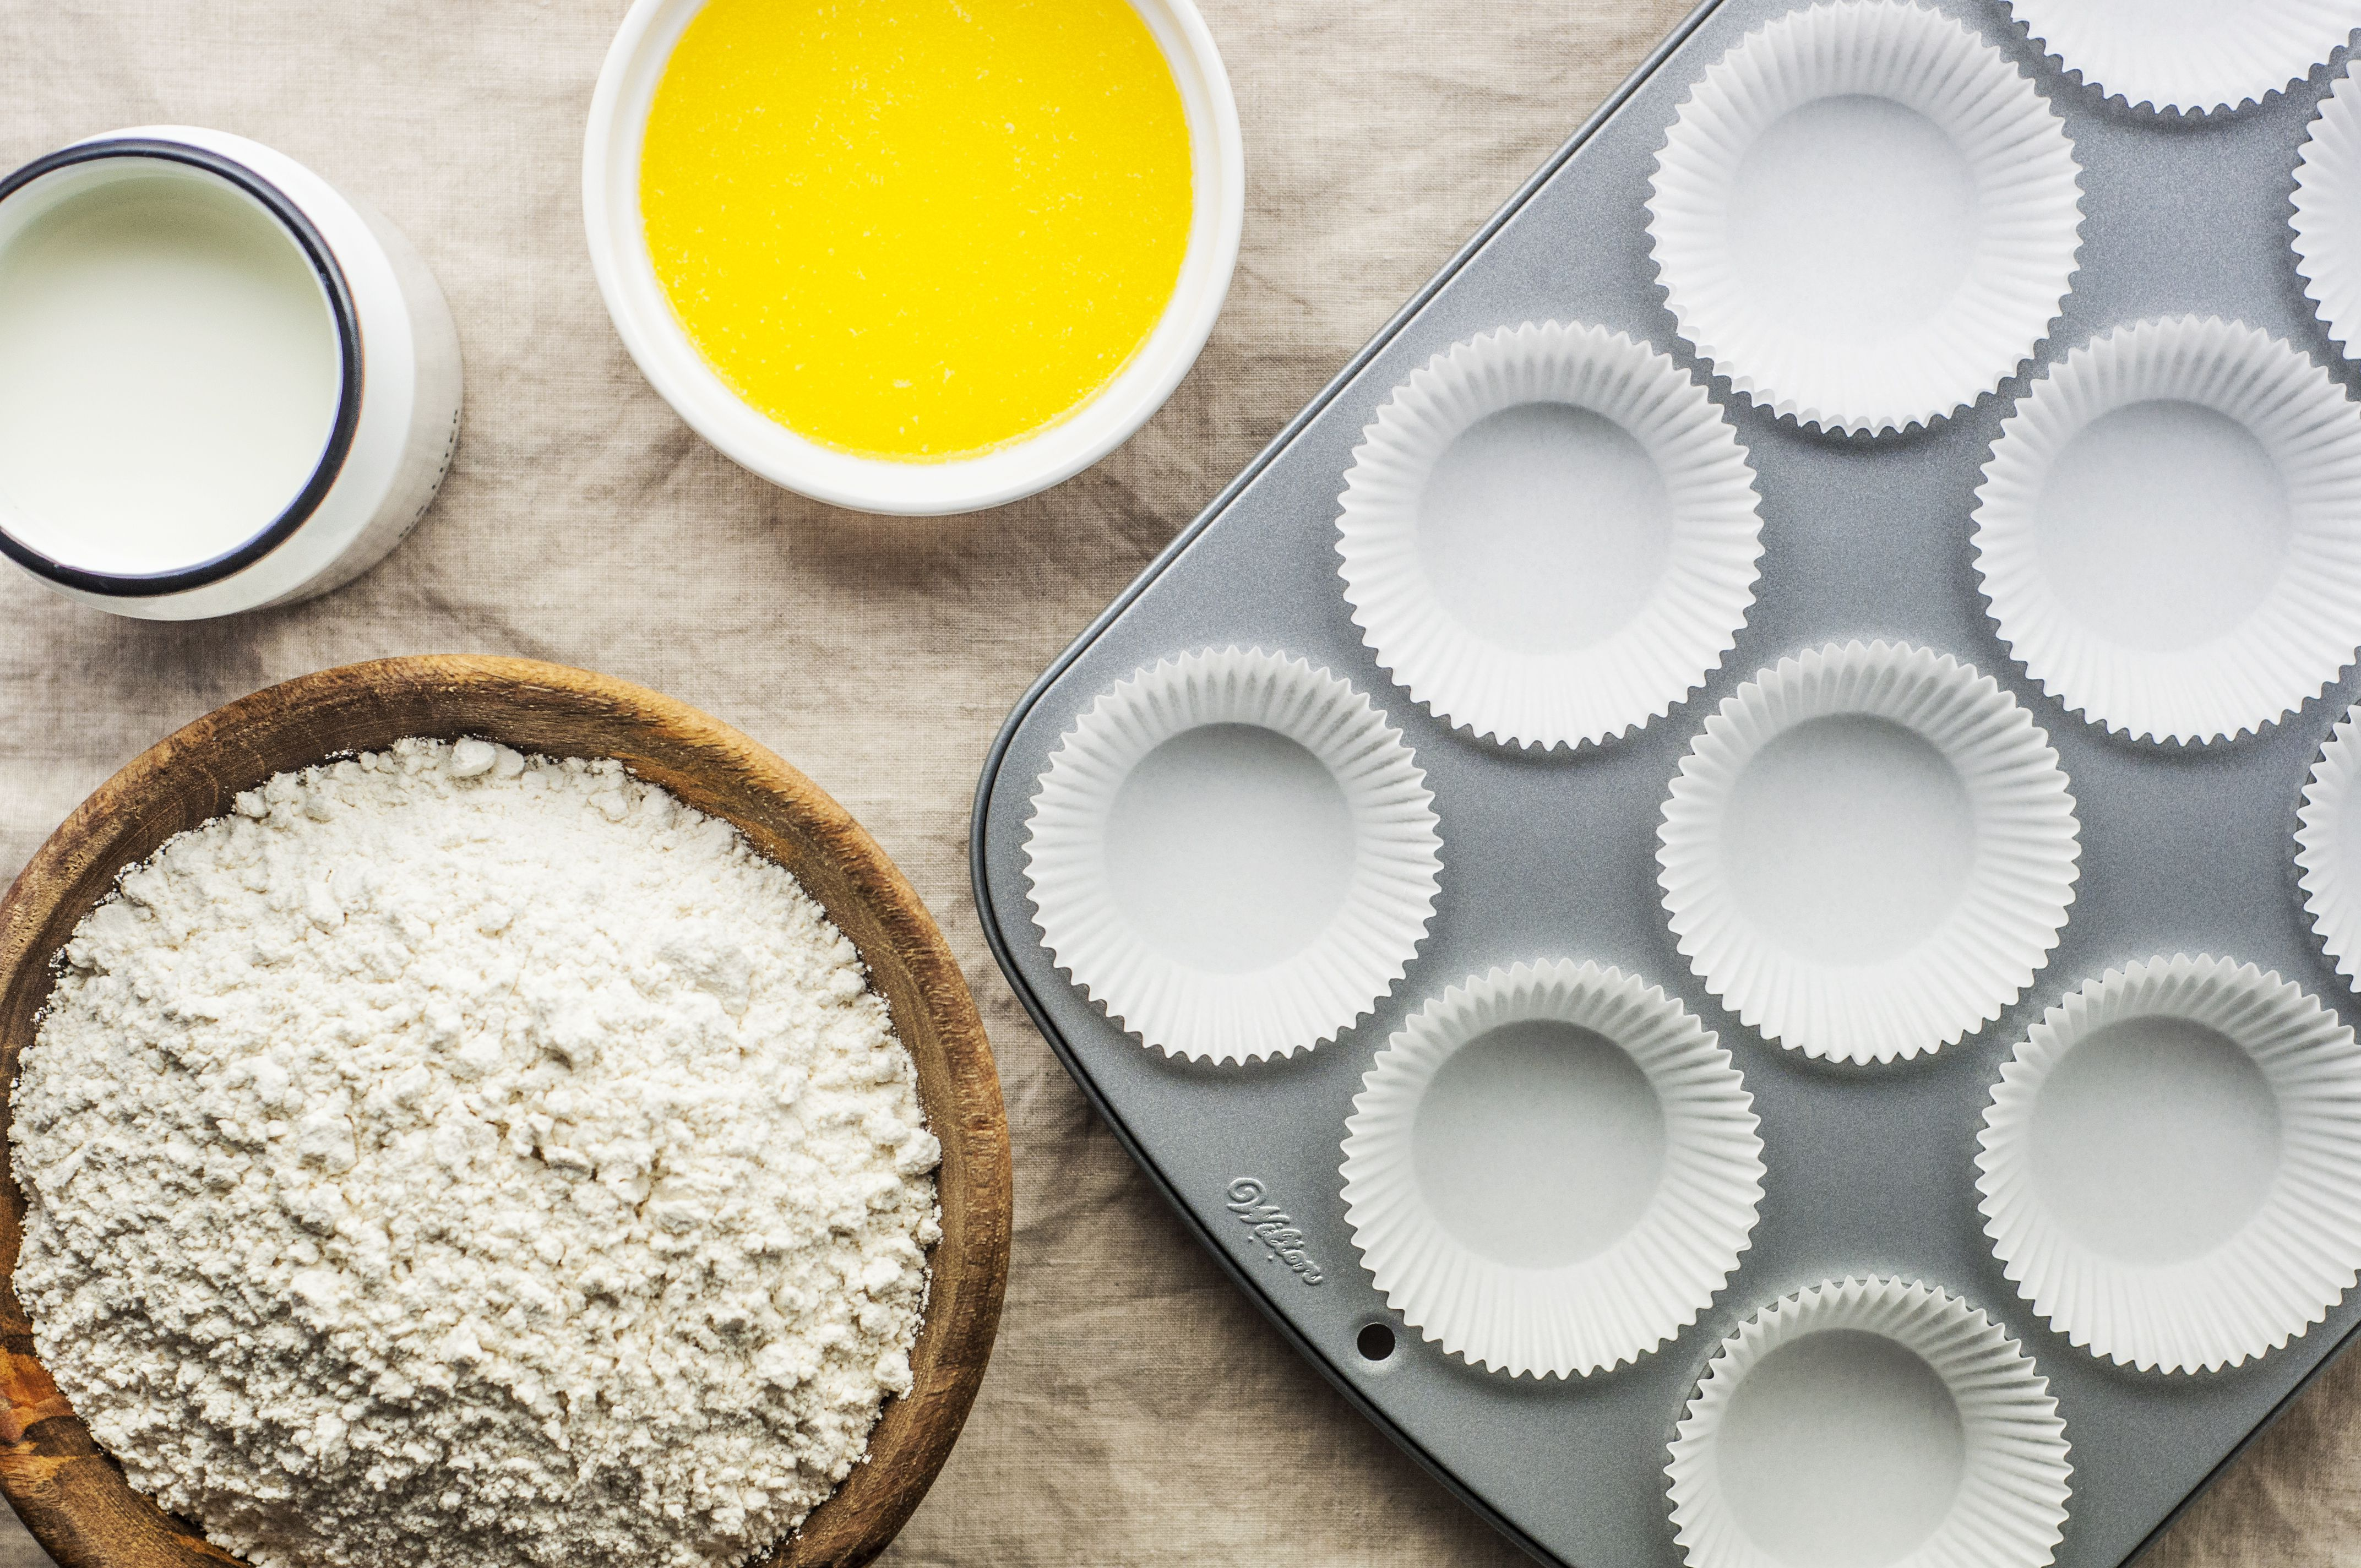 Paper cupcake liners in a muffin tray